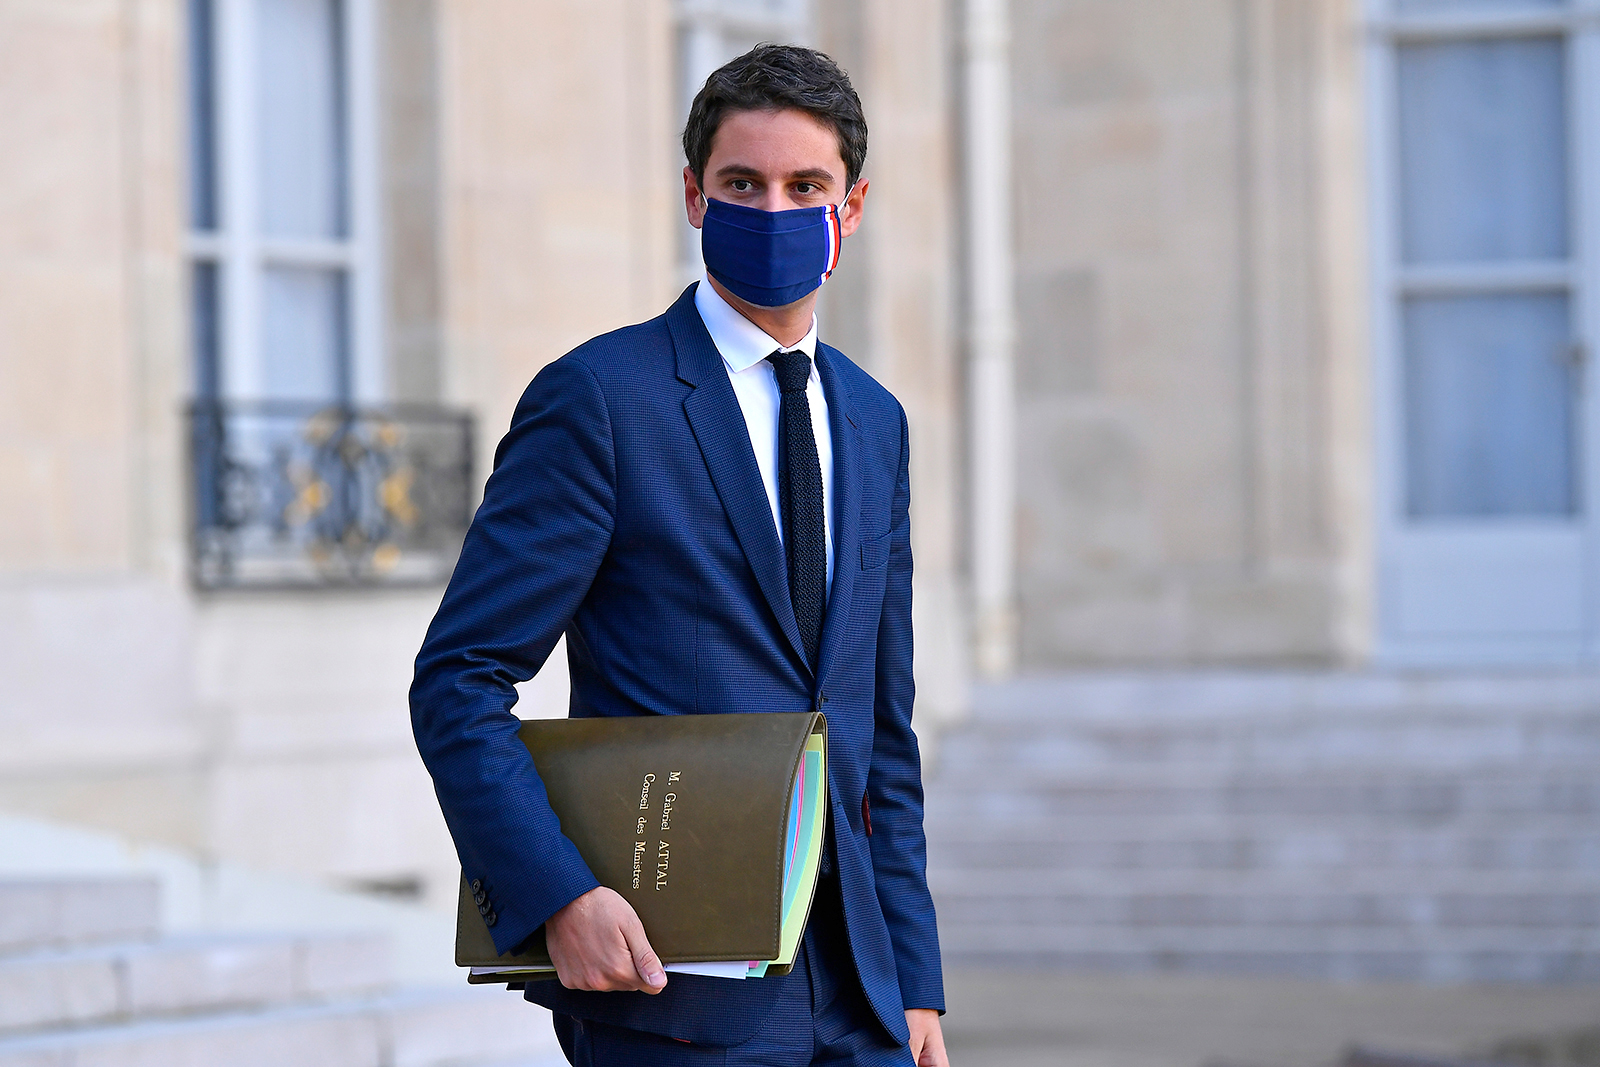 French government spokesman Gabriel Attal leaves the Élysée Palace after a cabinet meeting in November 2020.